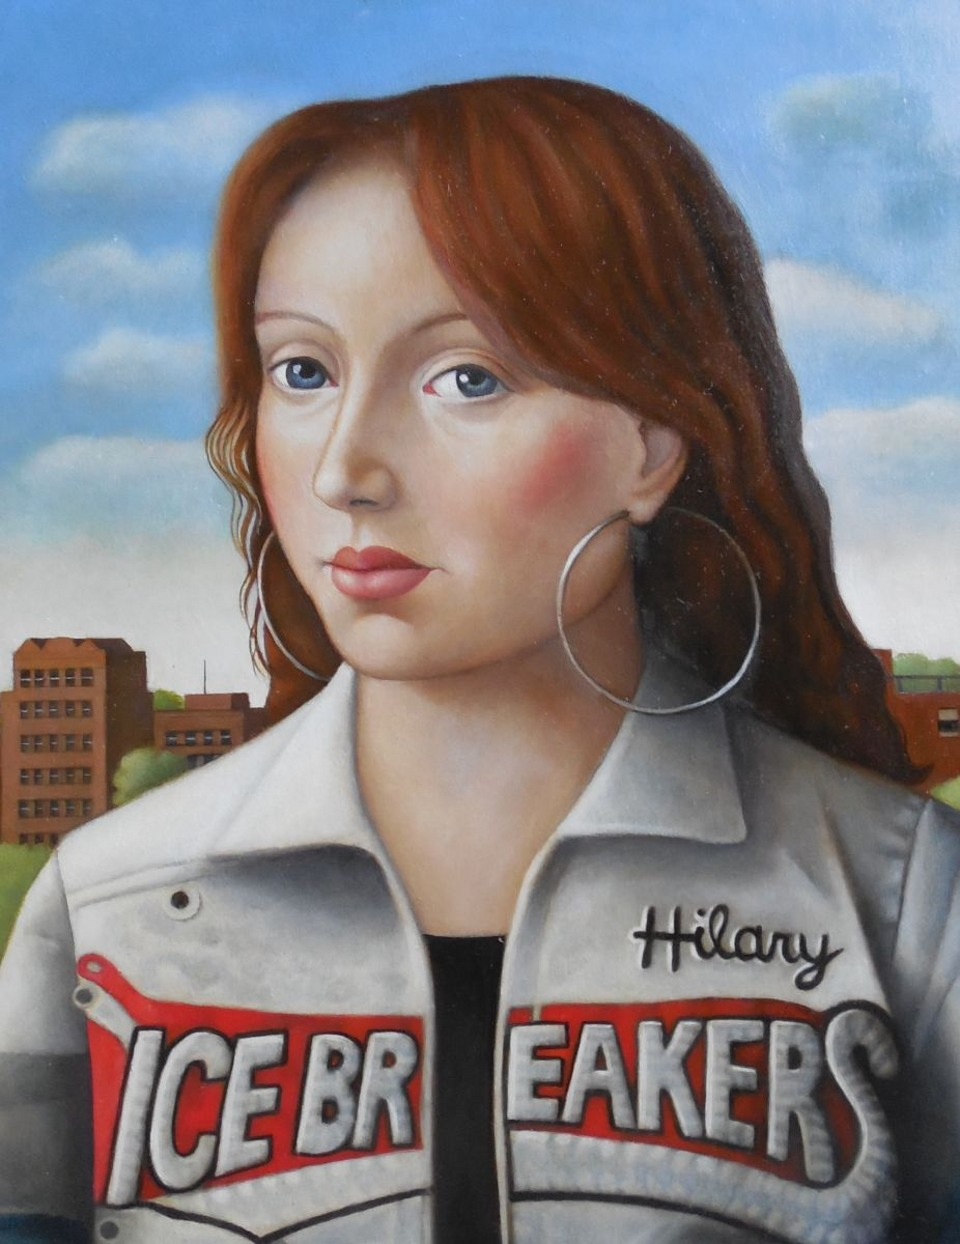 Young Woman in Icebreakers Jacket